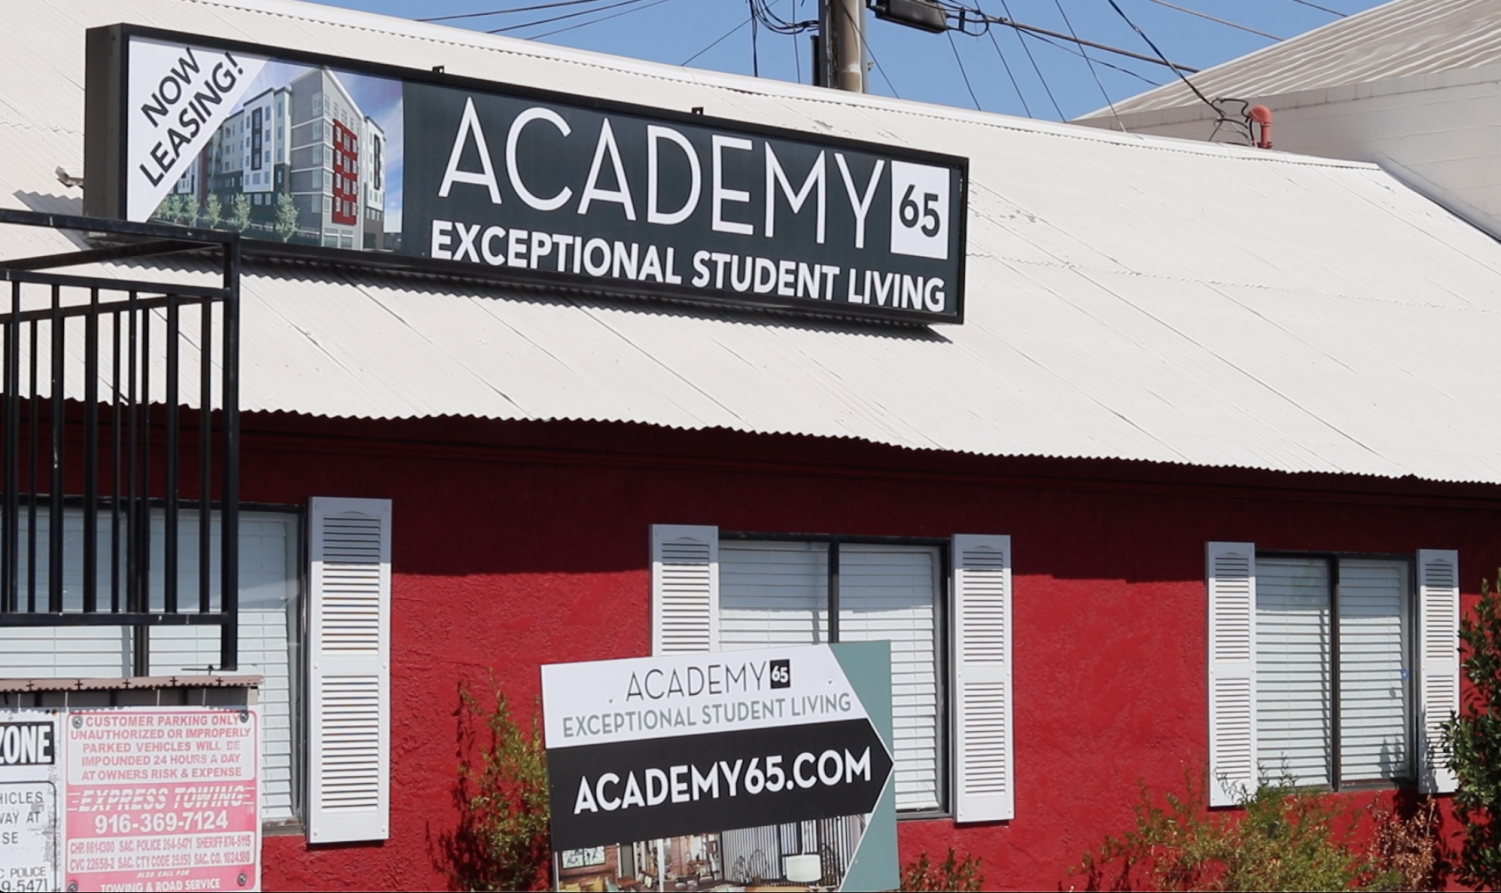 Academy65 leasing office located on 65th St. Move-in started at 2 p.m. on Tuesday, Sept. 10.